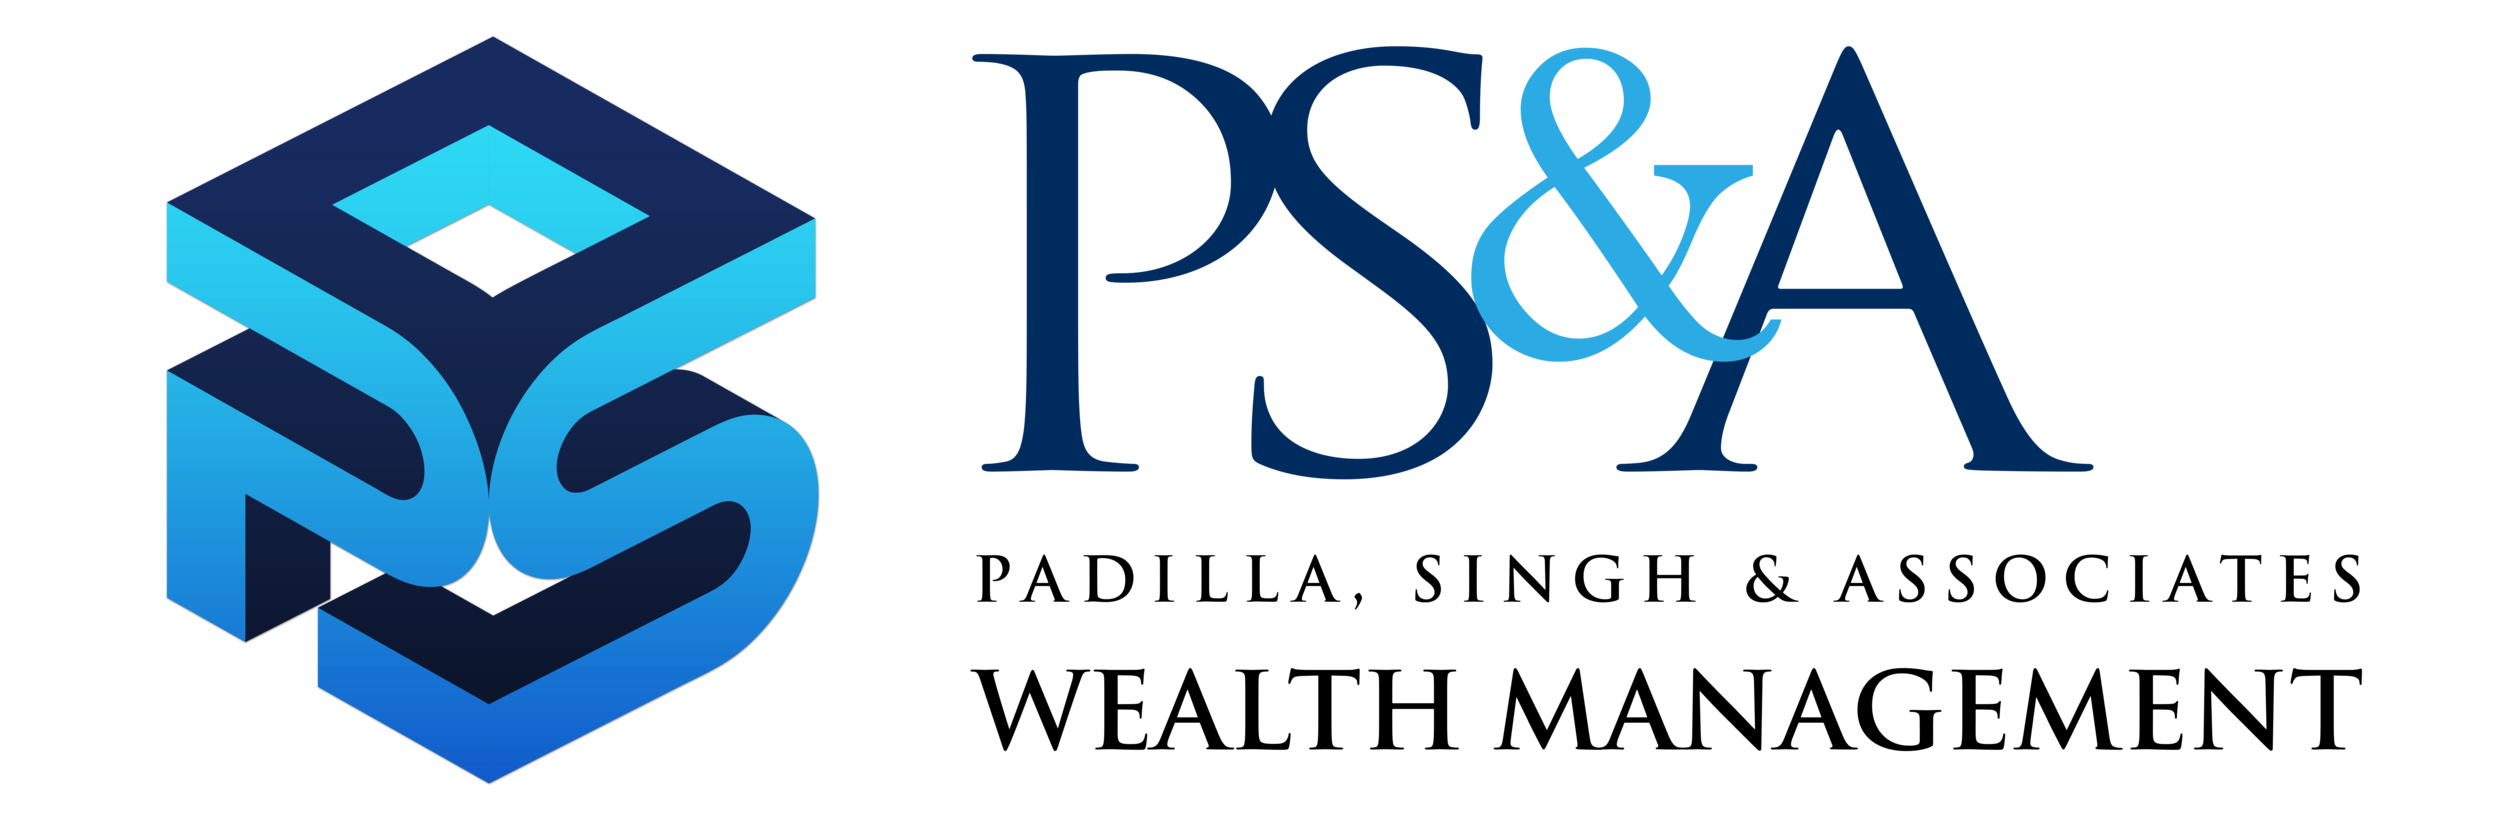 PSA Wealth Management logo horizontal.png